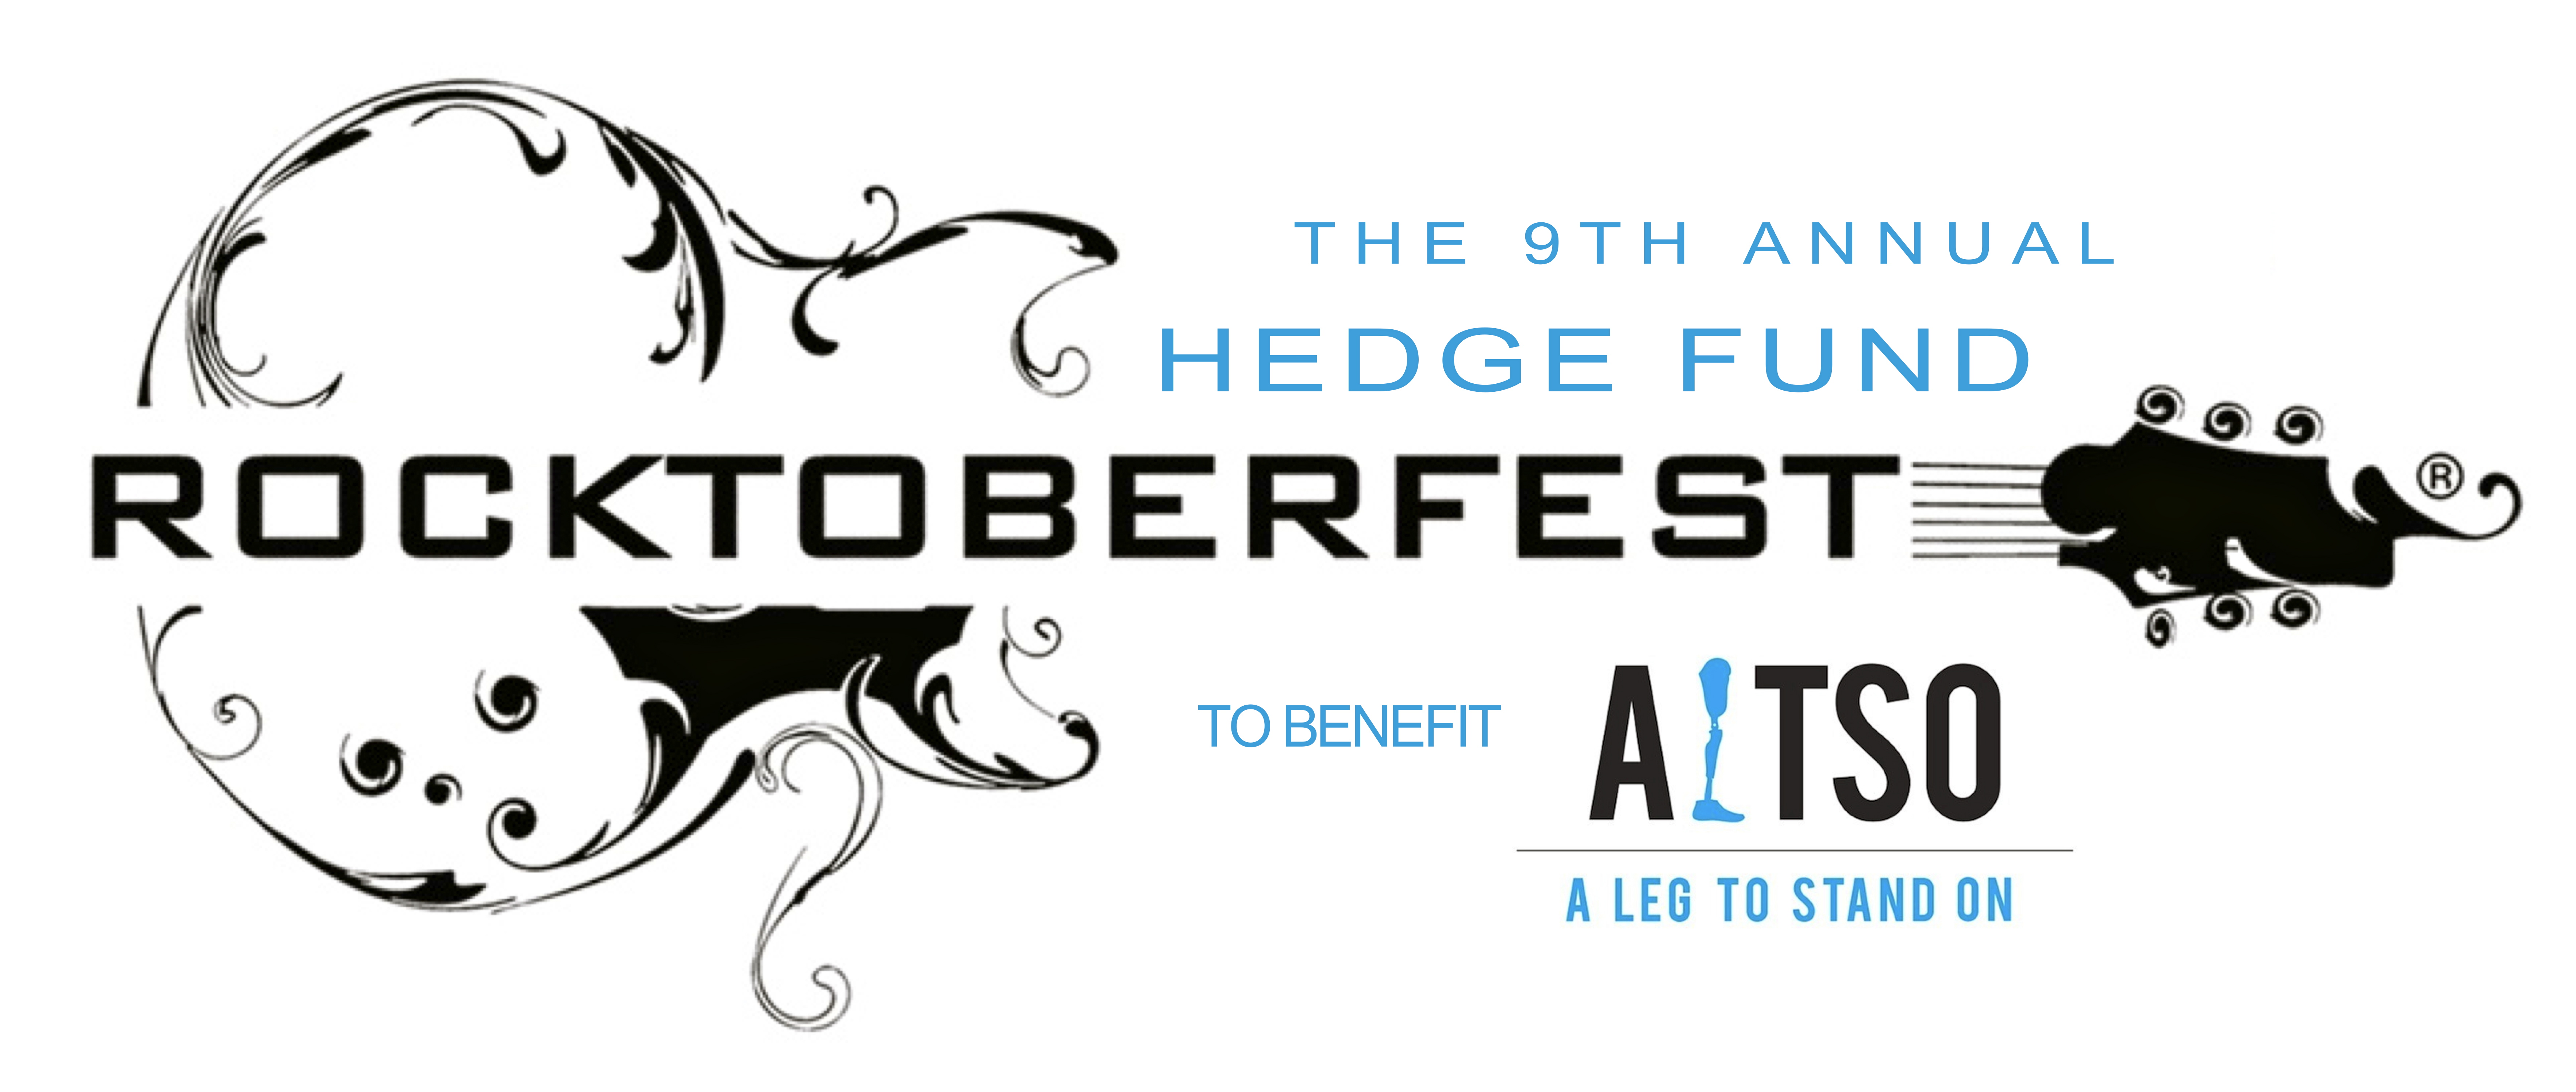 Hedge funders shake legs for charity at 'Rocktoberfest